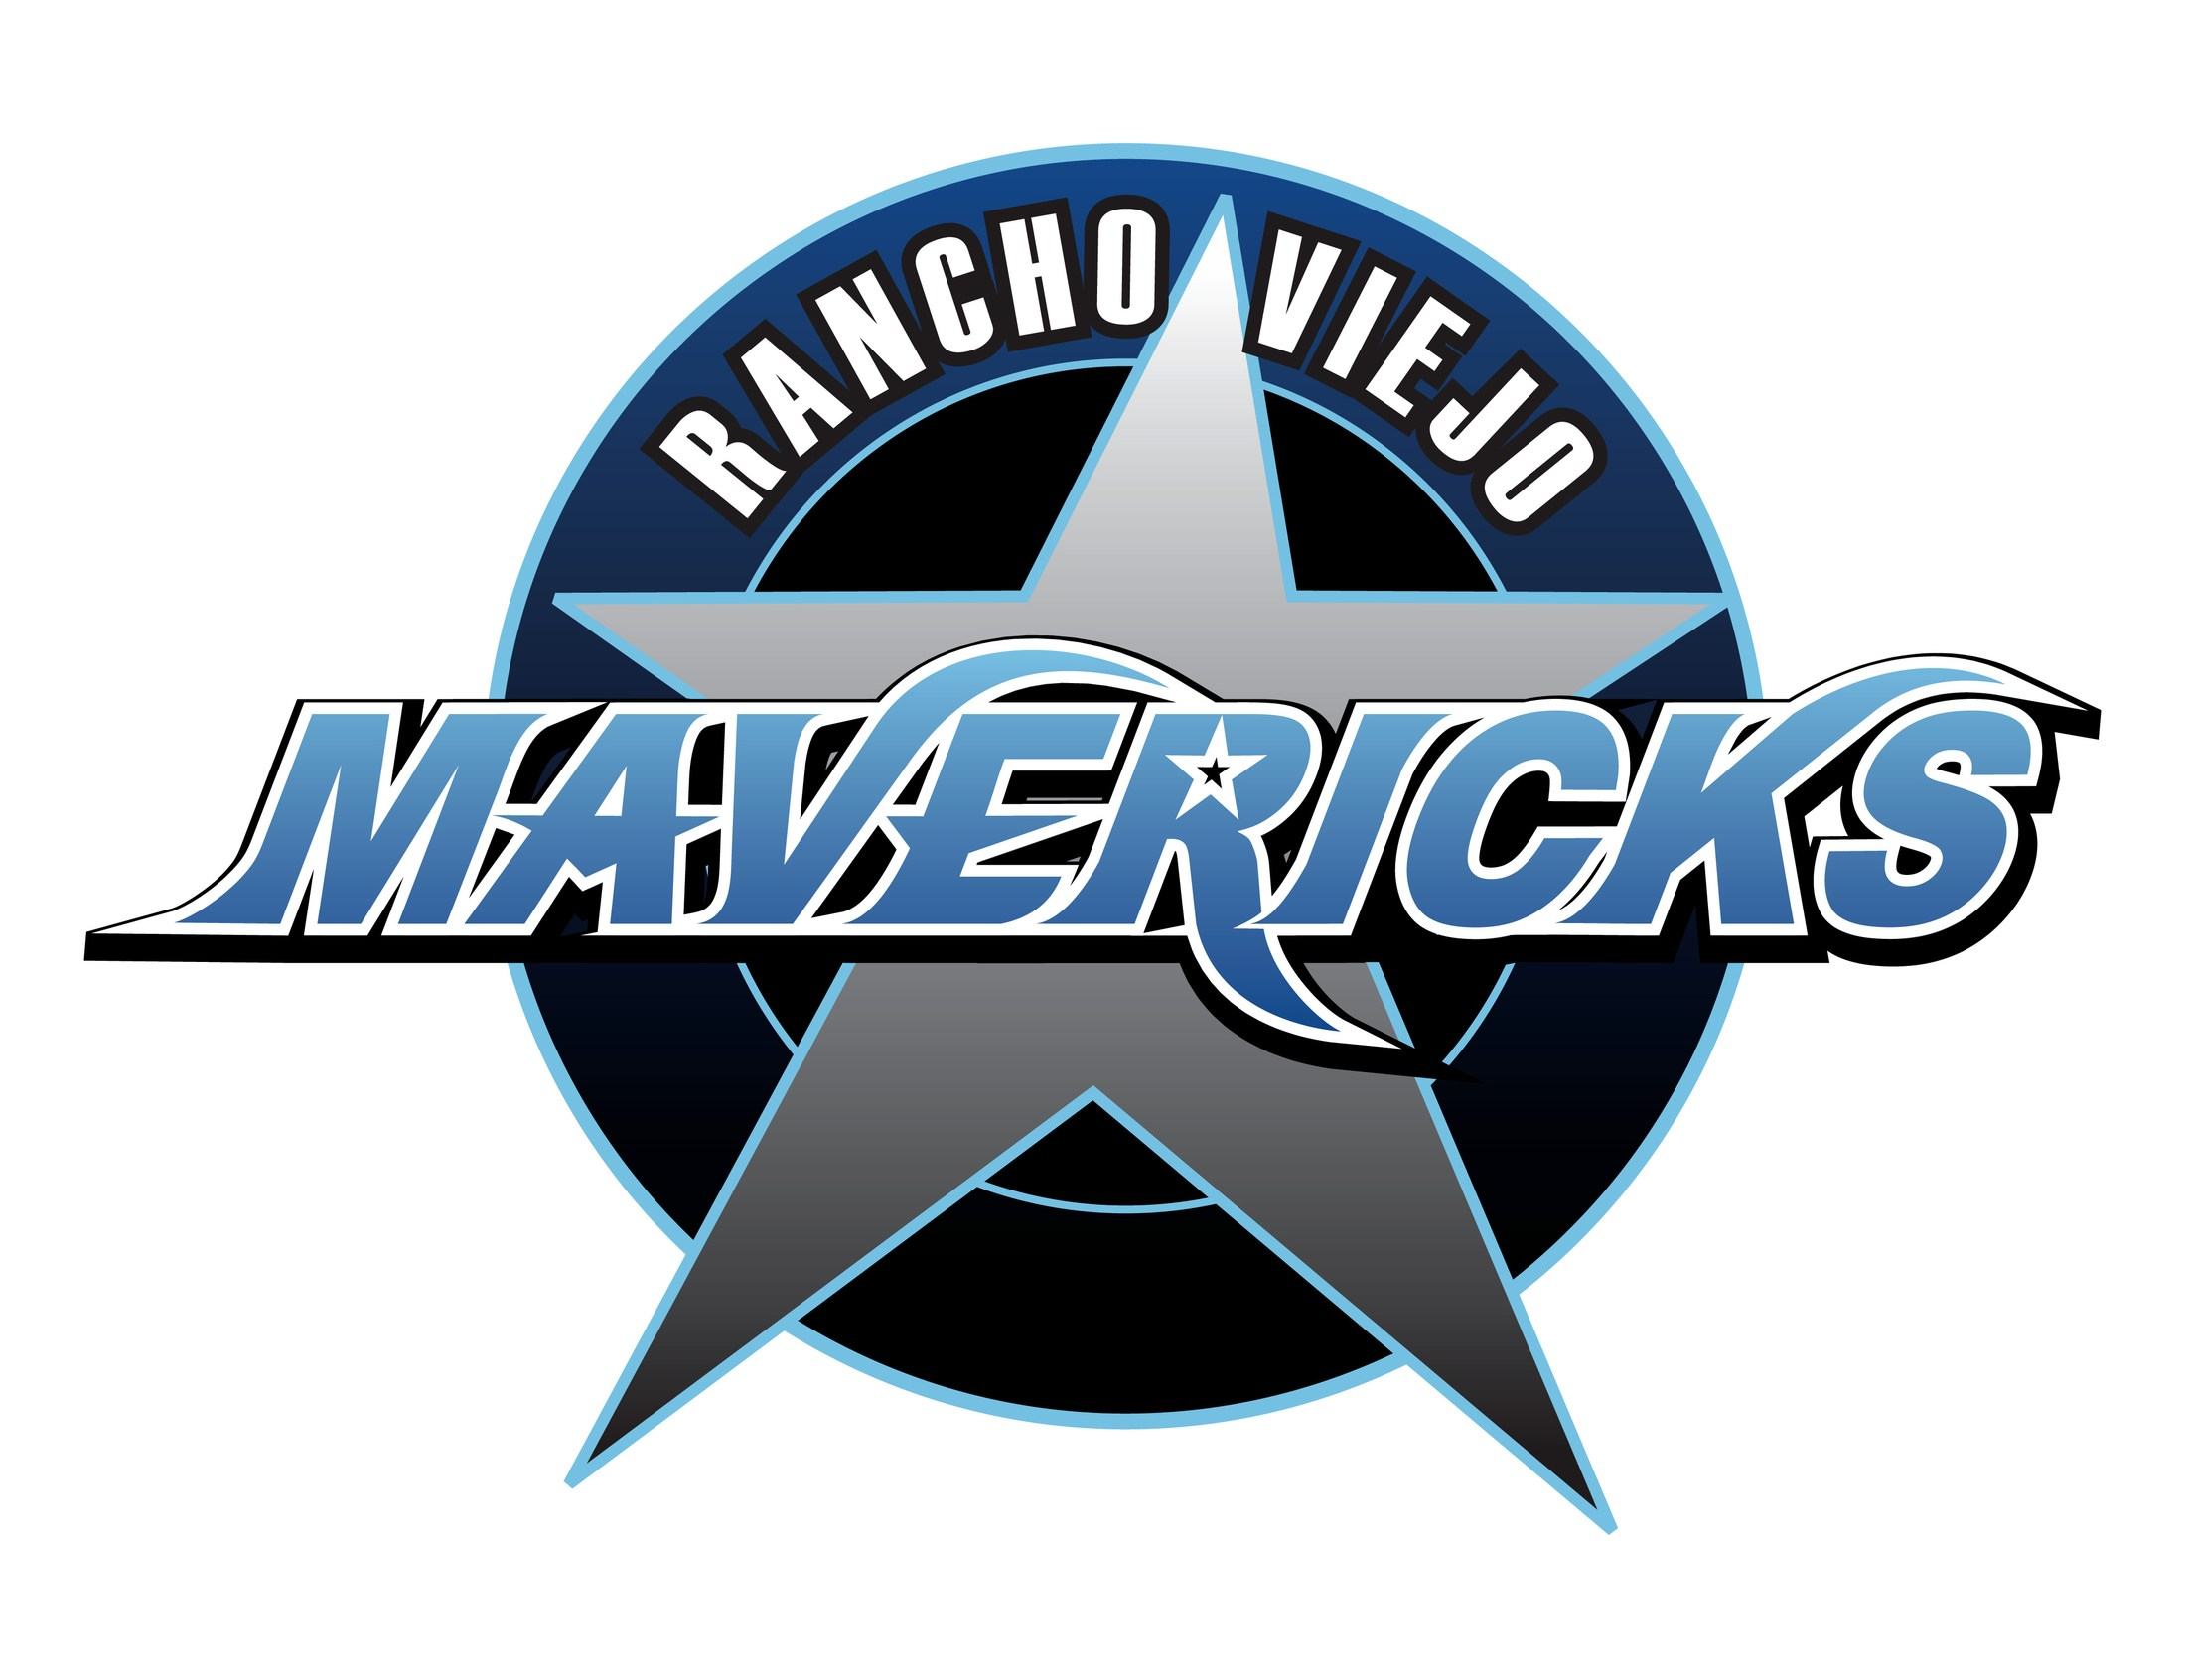 An image of the Rancho Viejo emblem